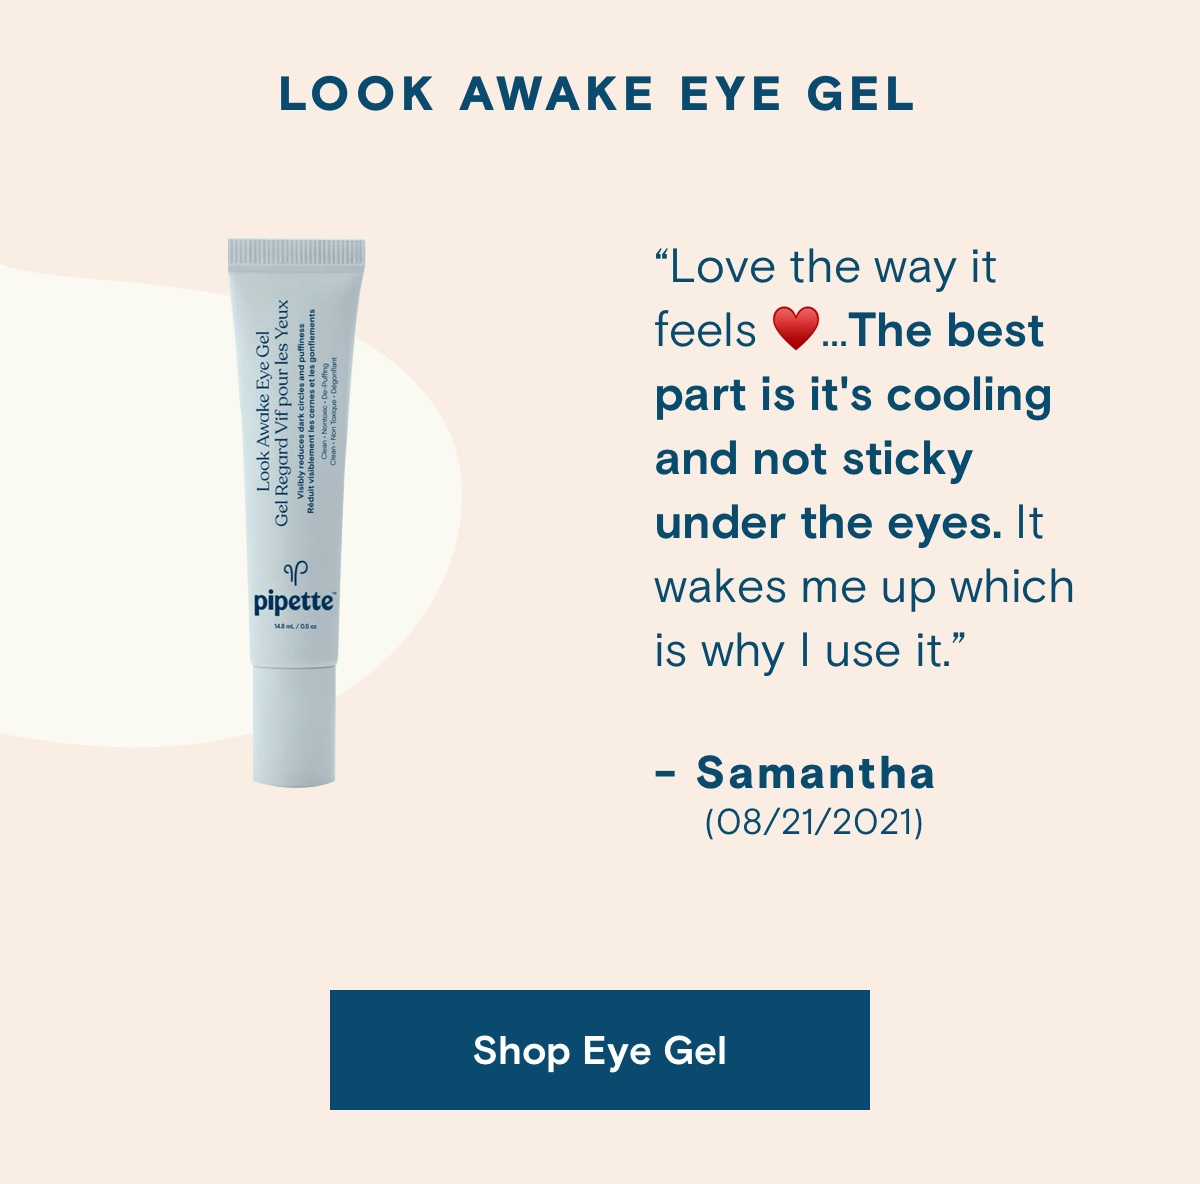 """LOOK AWAKE EYE GEL. """"Love the way it feels.. The best part is it's cooling and not sticky under the eyes. It wakes me up which is why I use it."""" - Samantha (08/21/2021).  Shop Eye Gel."""